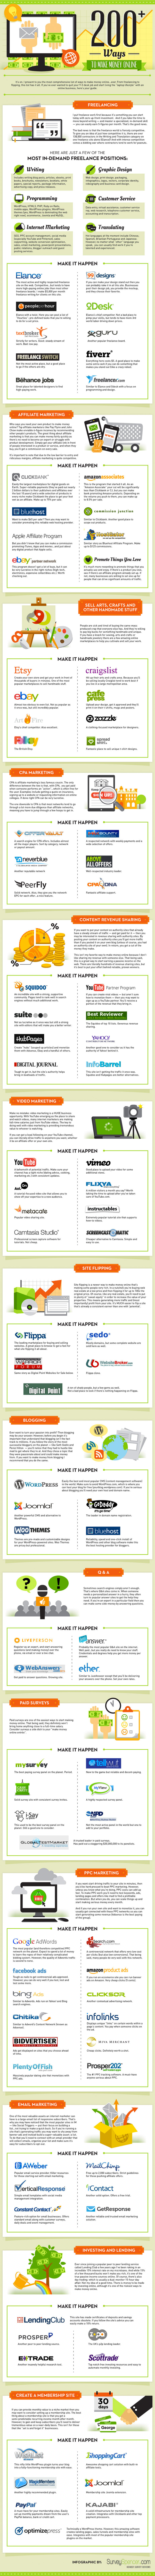 200-ways-to-make-money-online-from-home-infographic